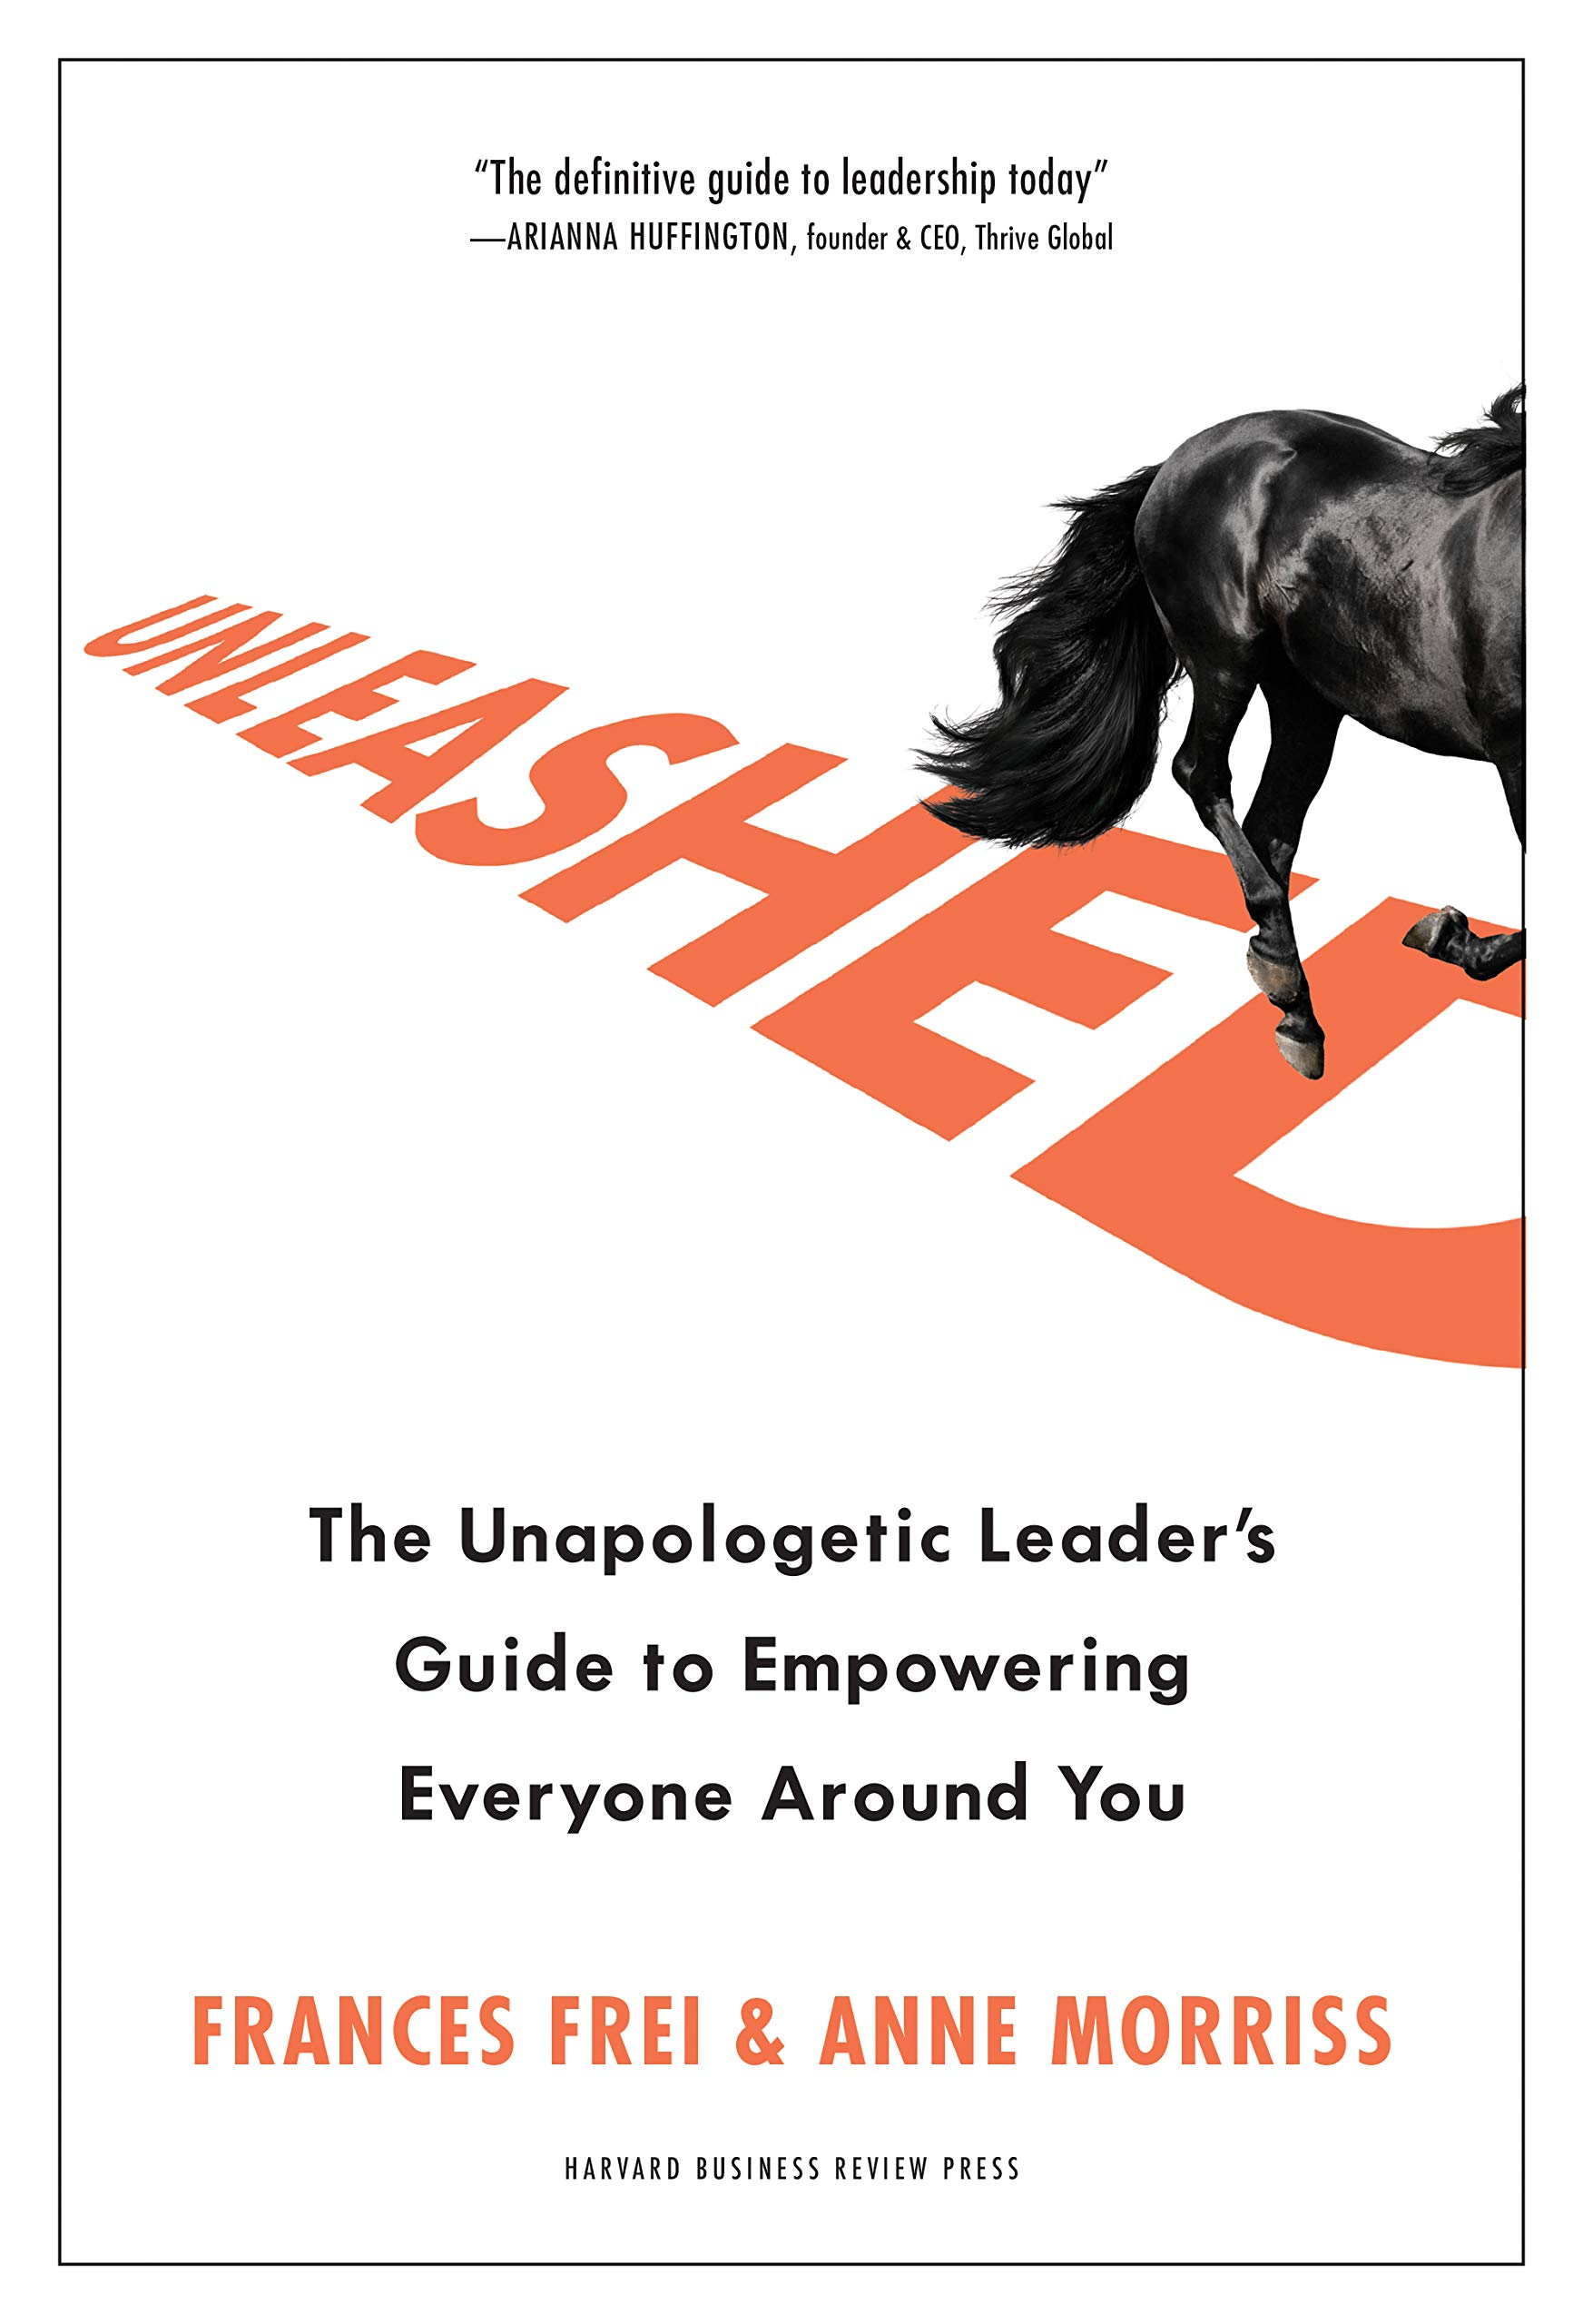 Download Unleashed: The Unapologetic Leader's Guide To Empowering Everyone Around You 